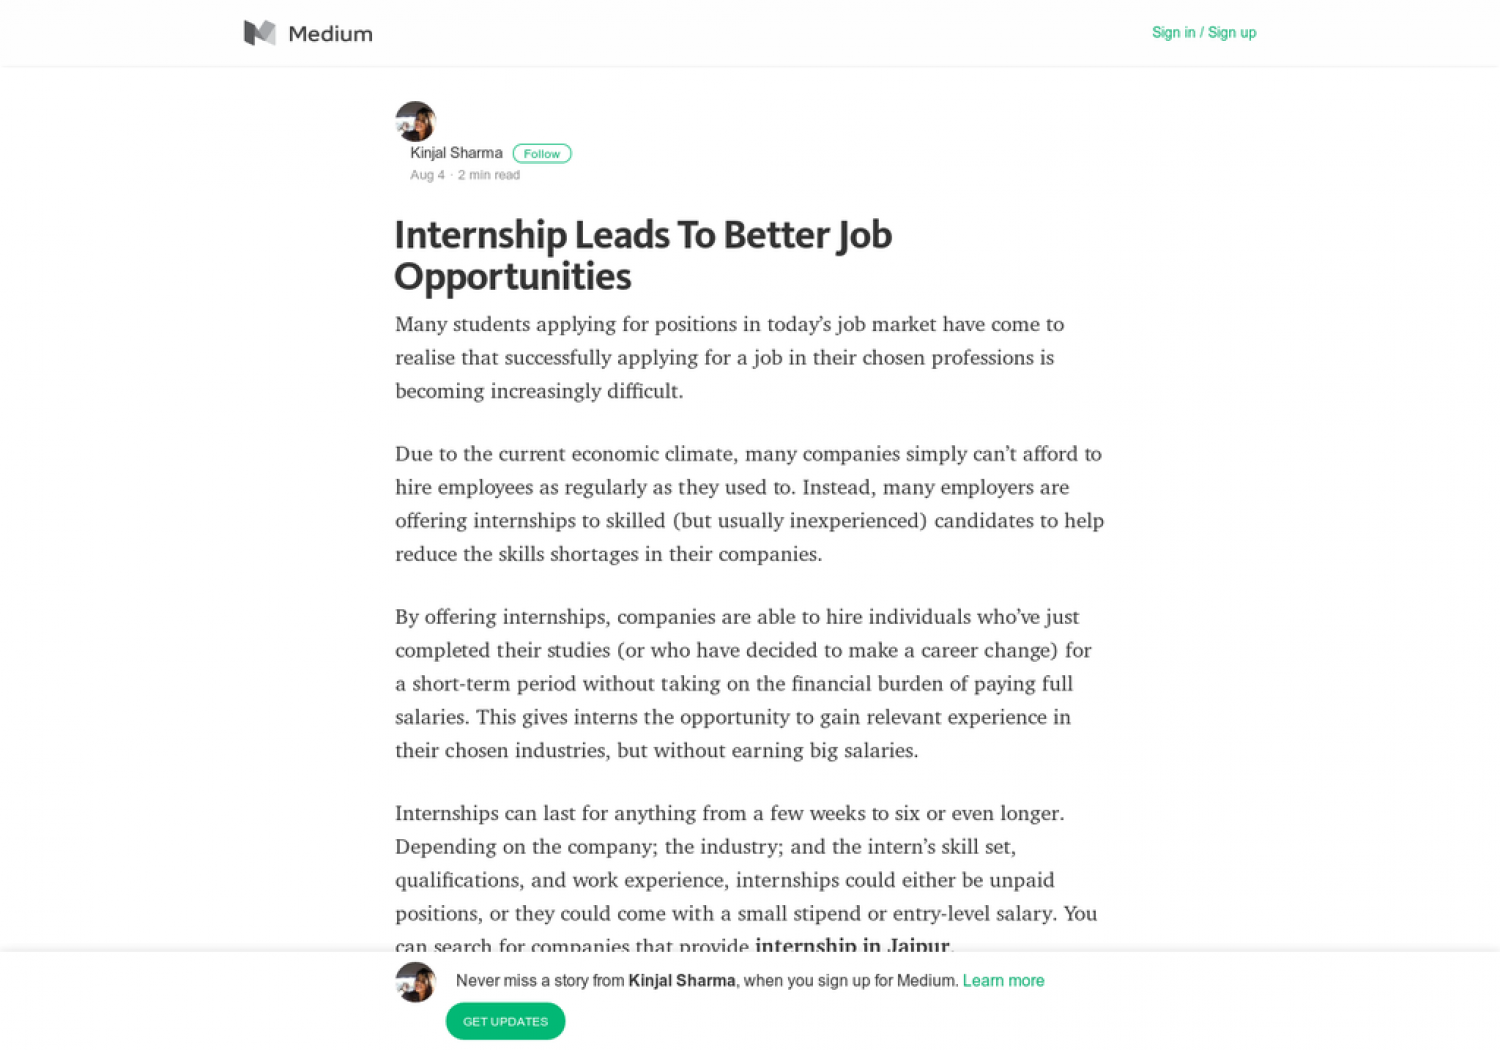 Internship Leads To Better Job Opportunities Infographic